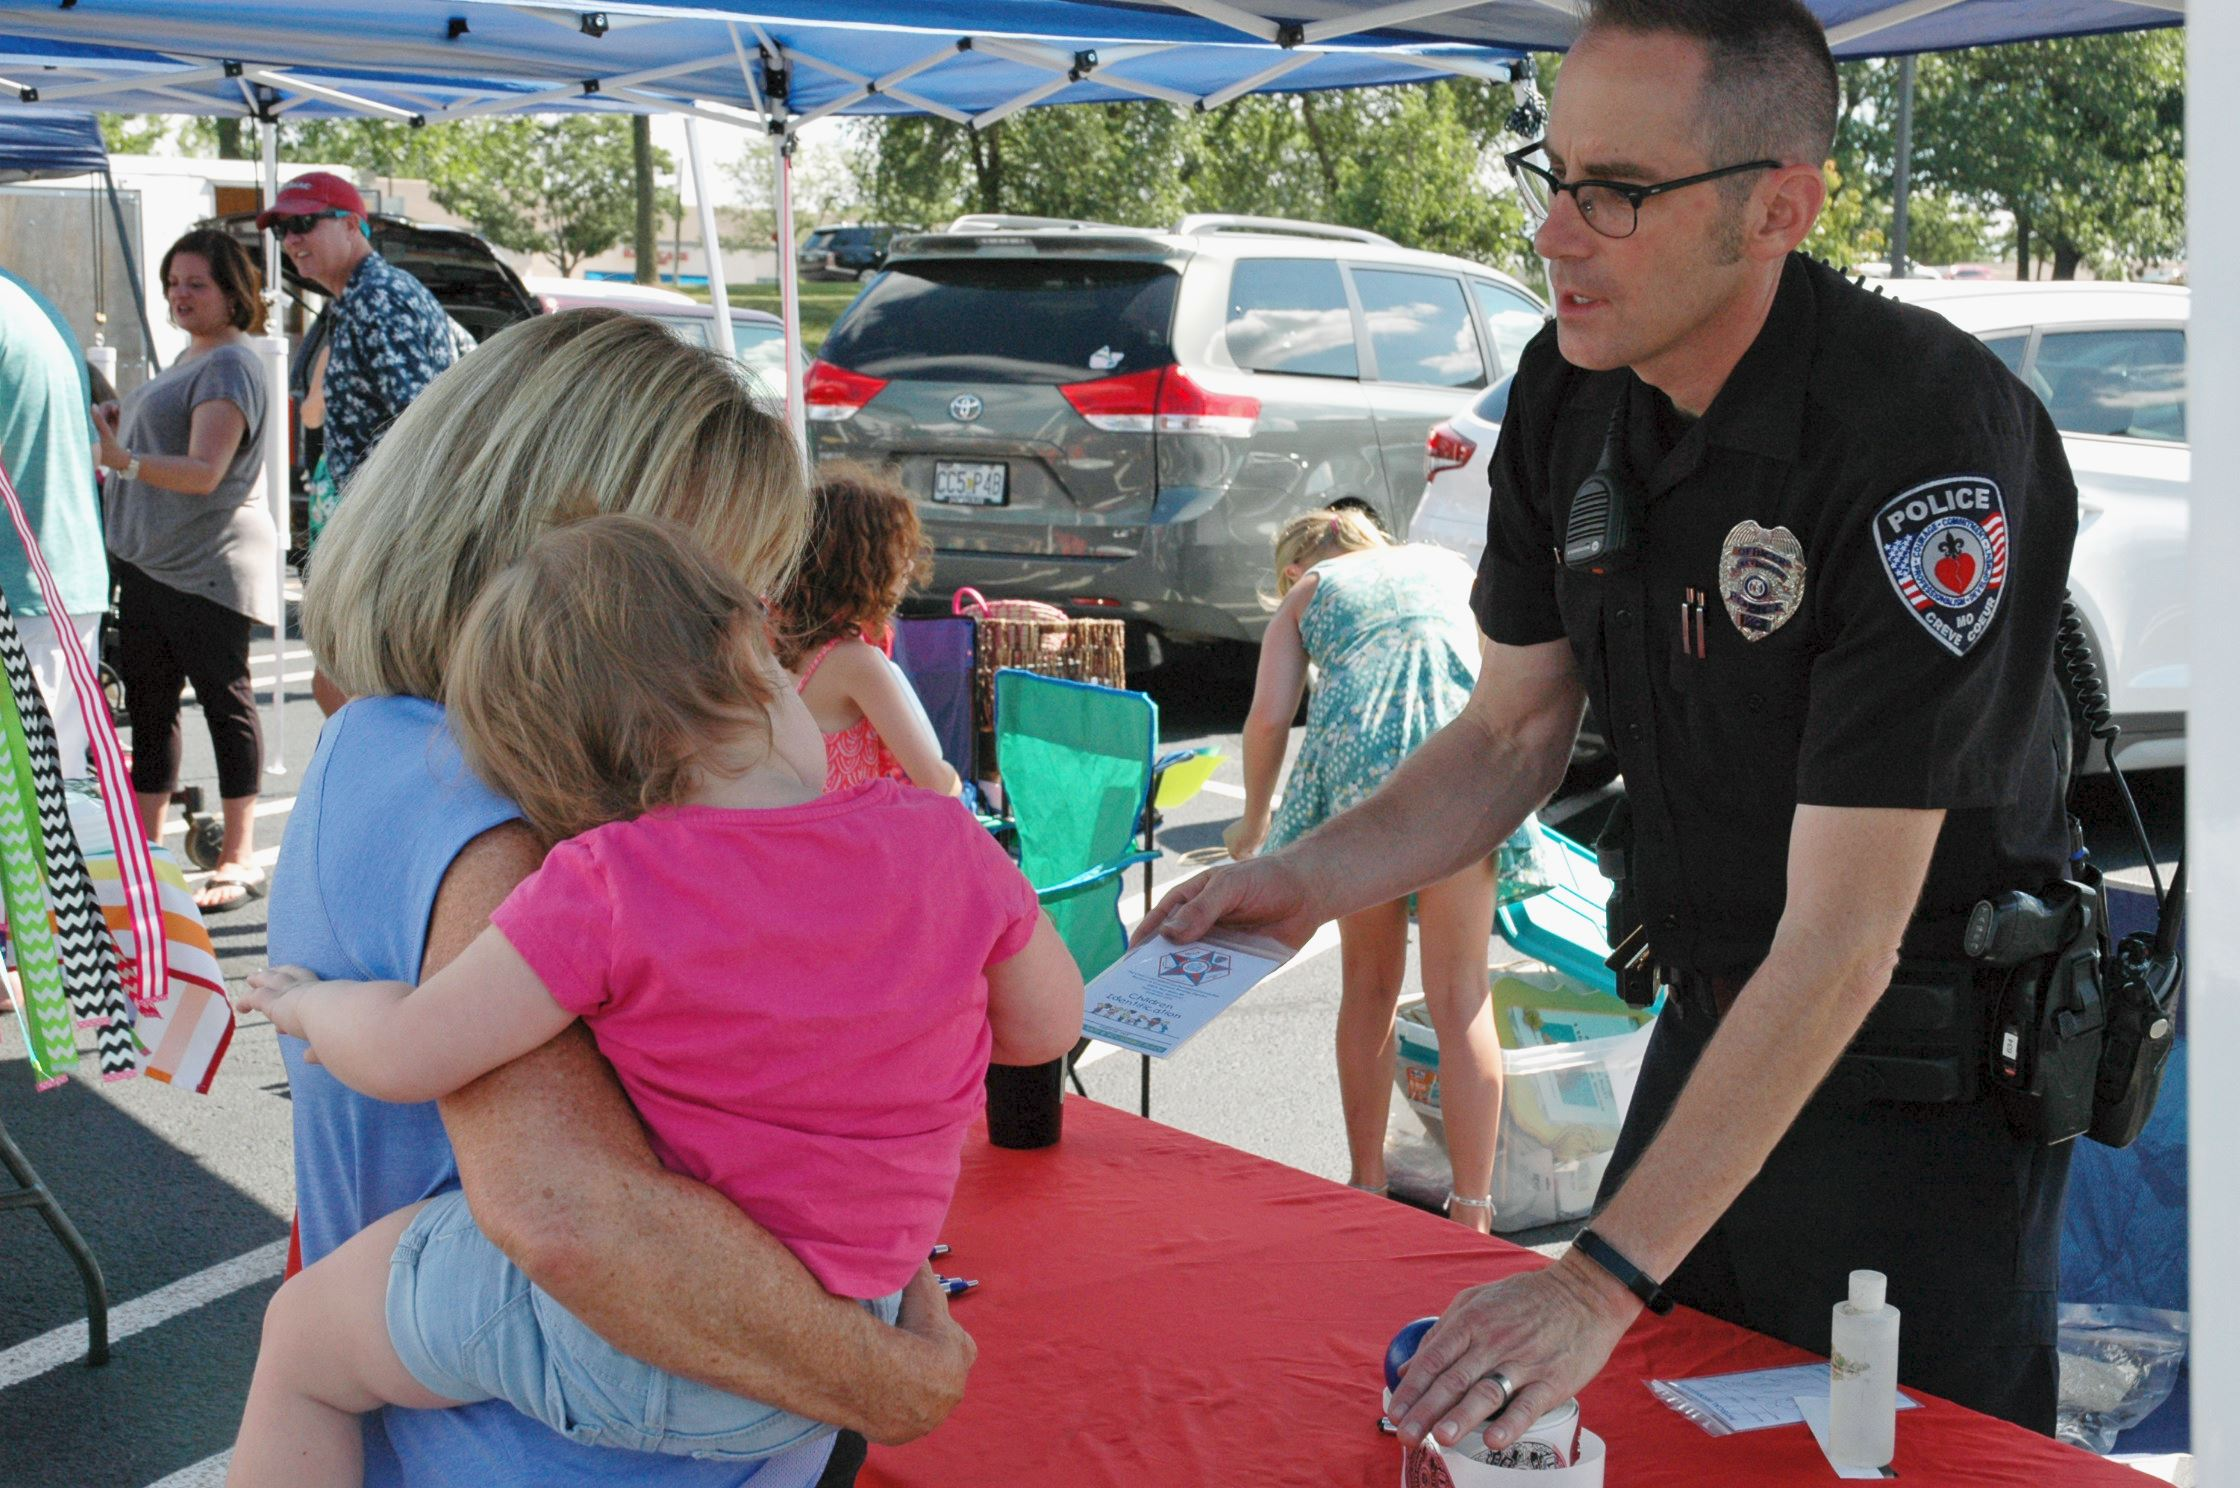 Creve Coeur police officer handing out child identification kits